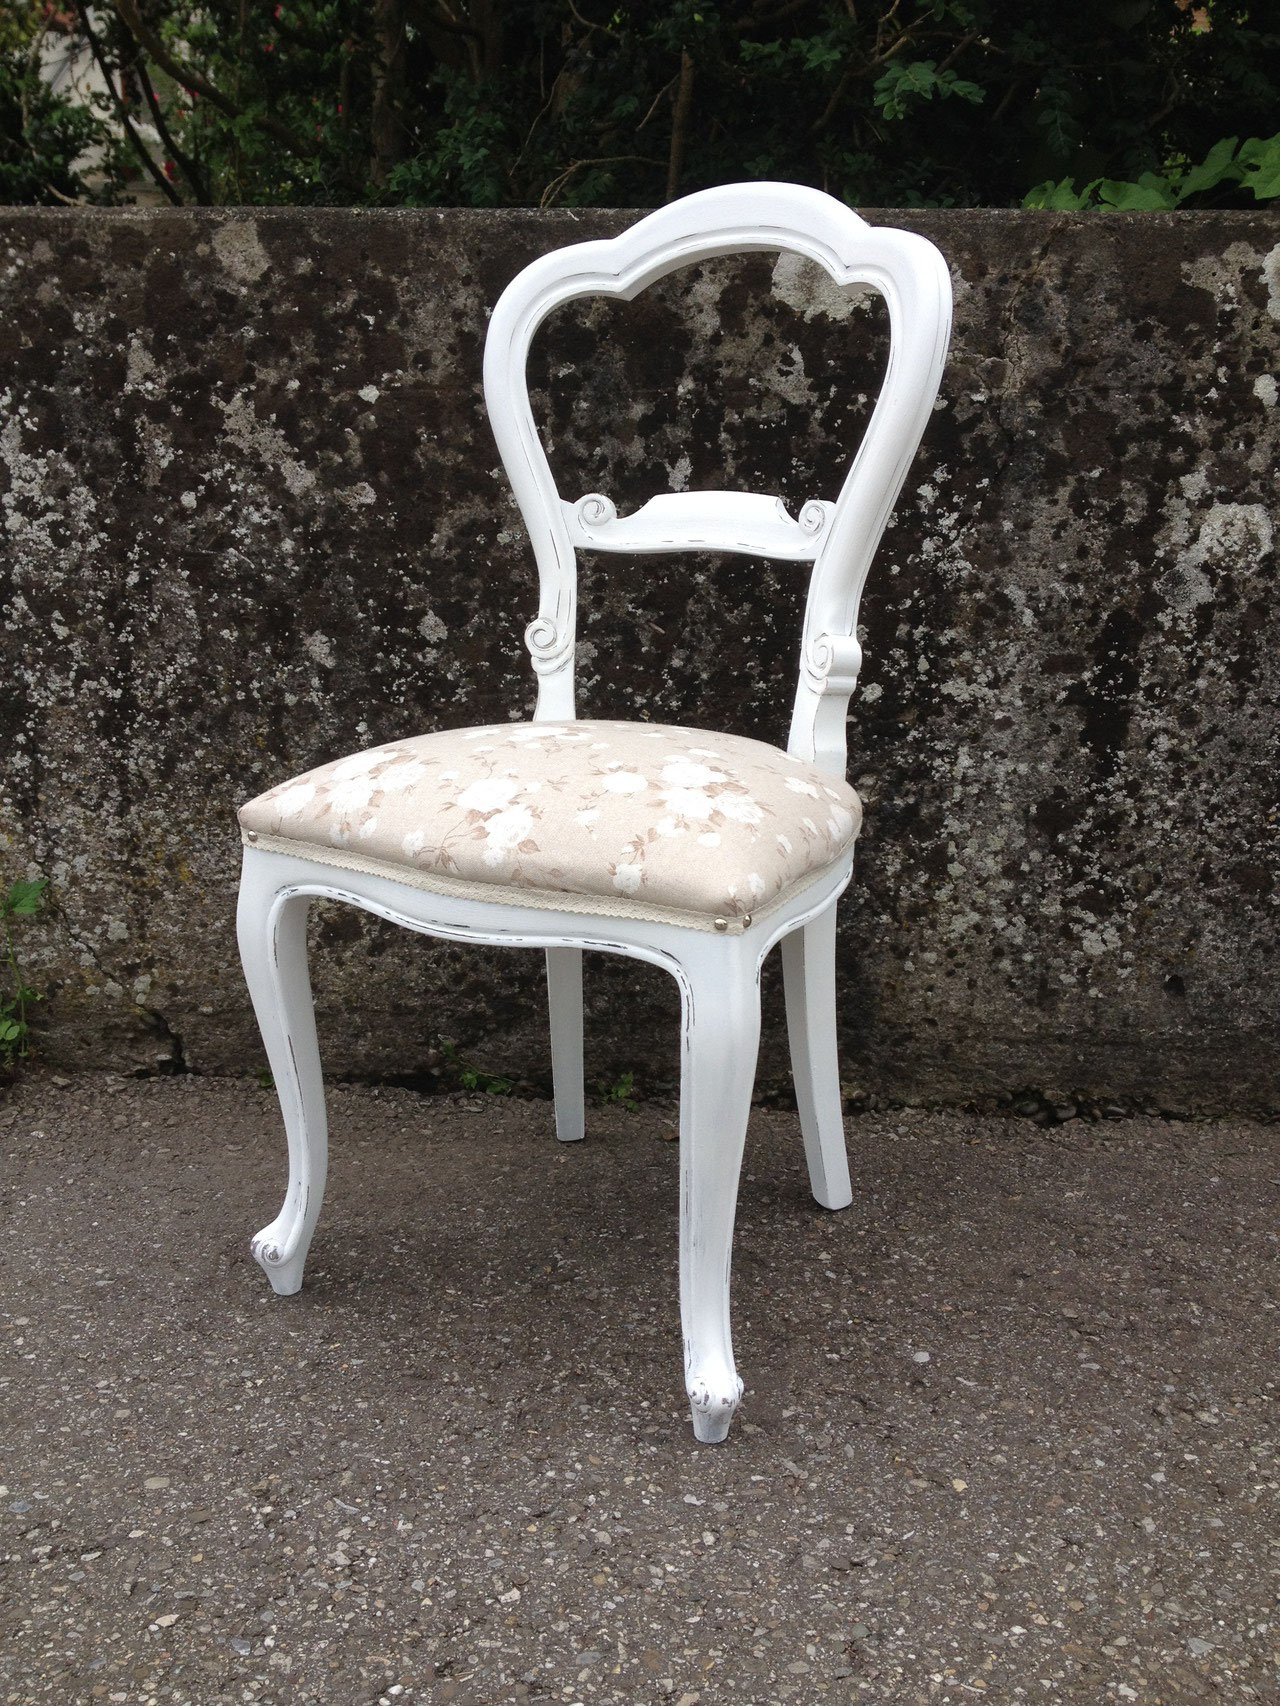 Möbel Landhausstil Onlineshop Onlineshop Shabby Chic And Landhausstil Möbel And Accessoires